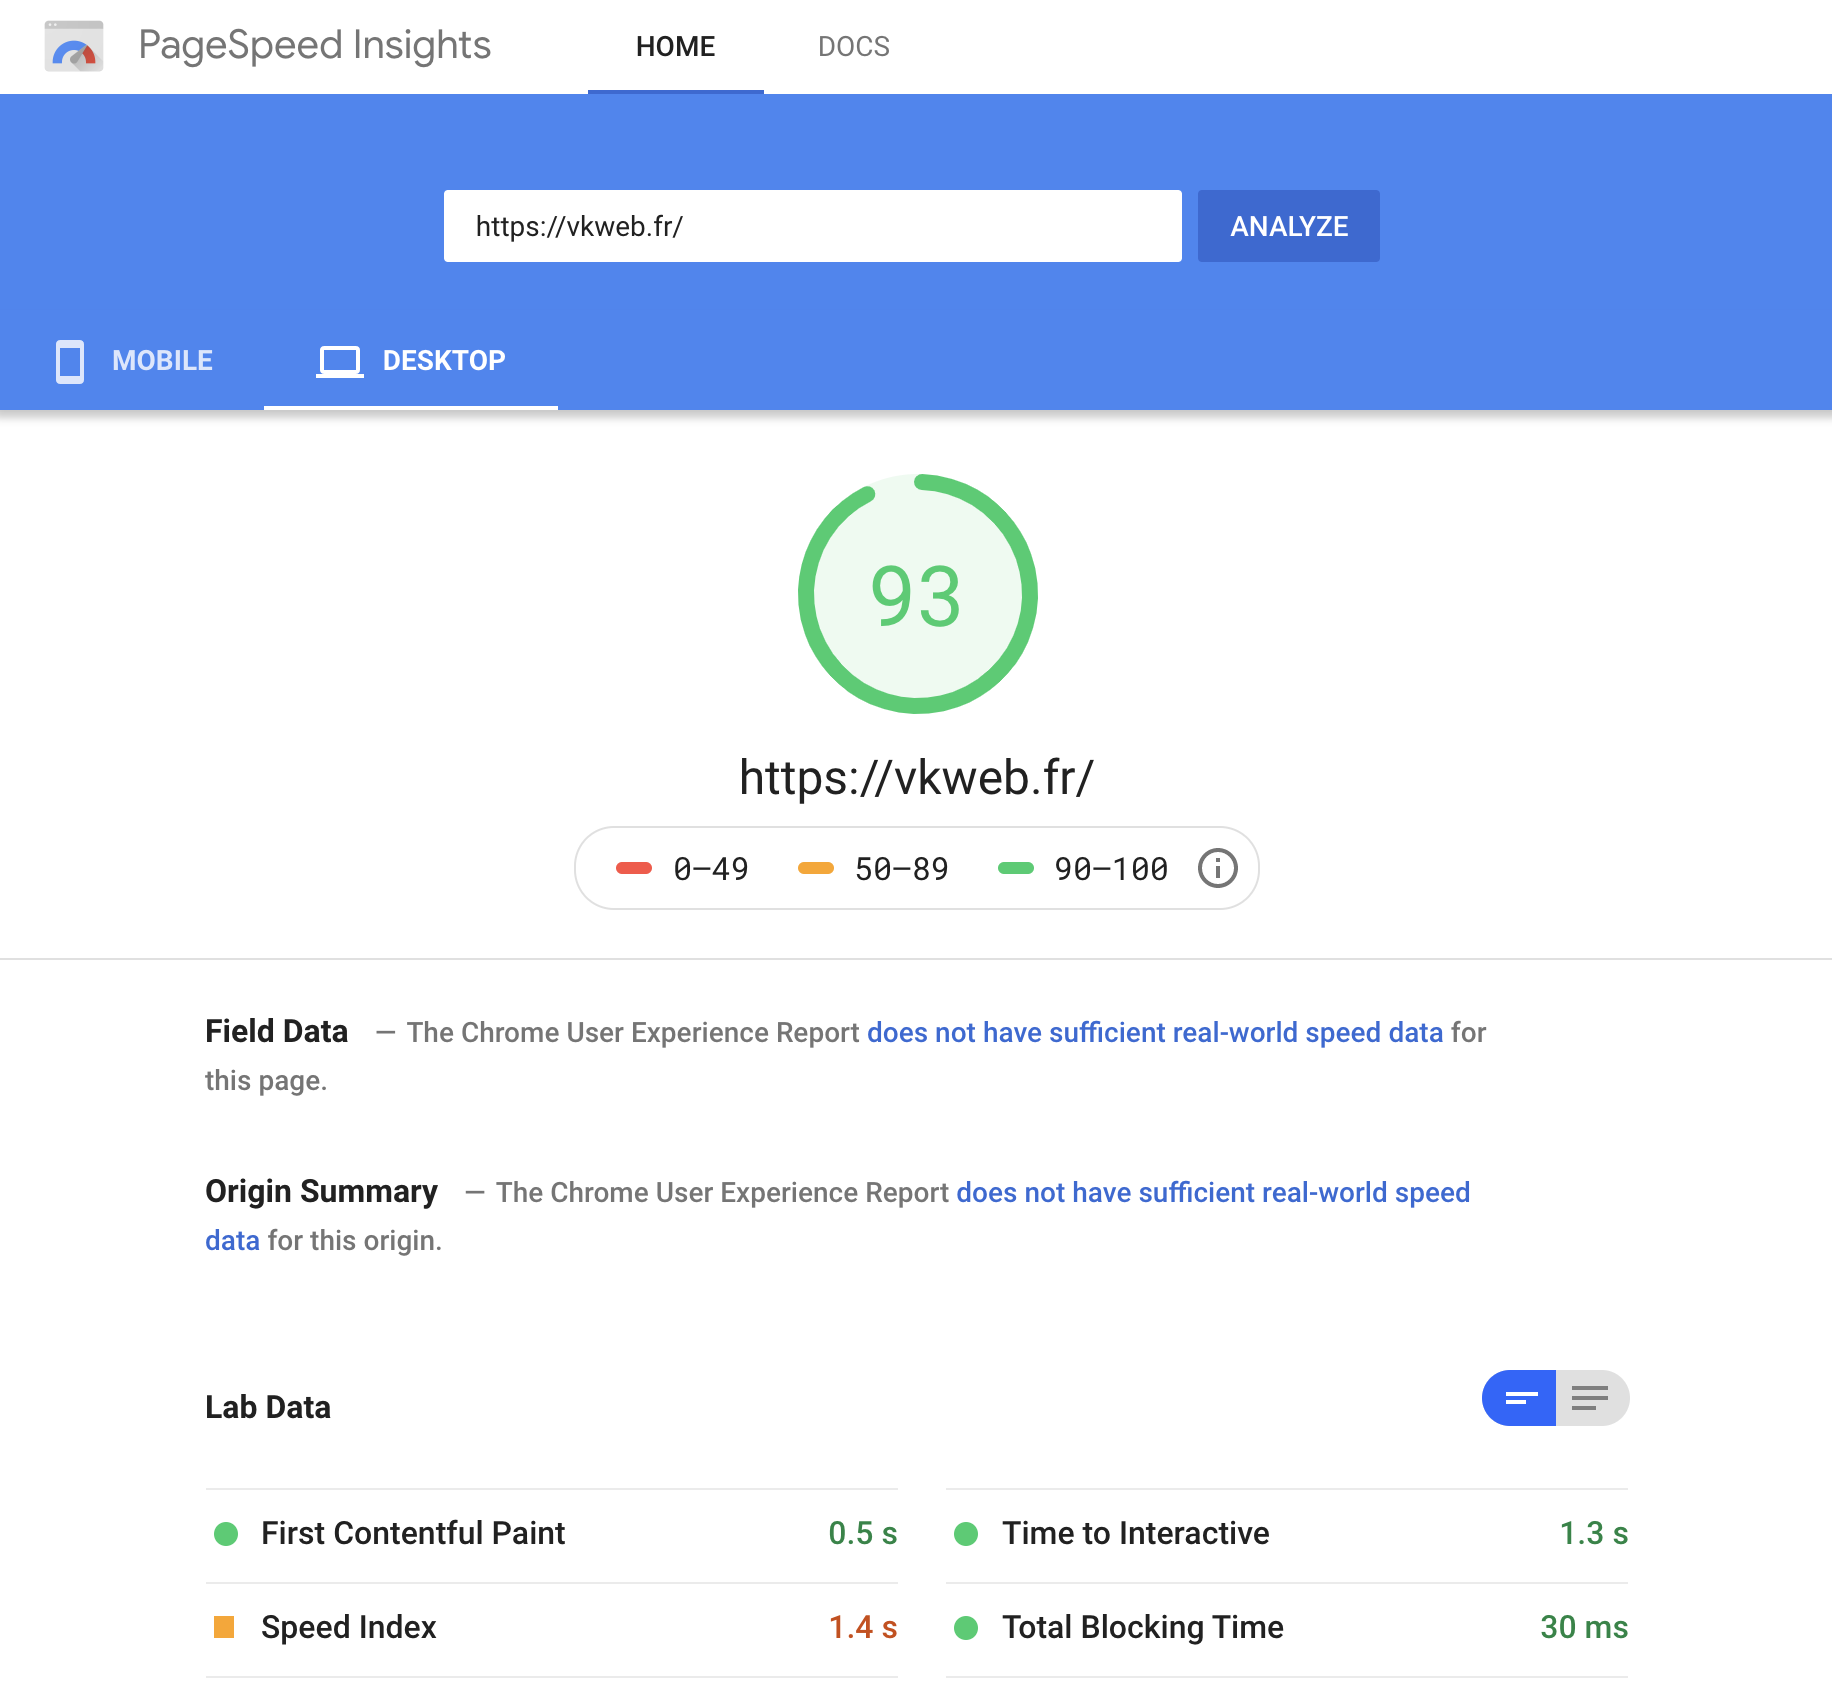 pagespeed desktop score